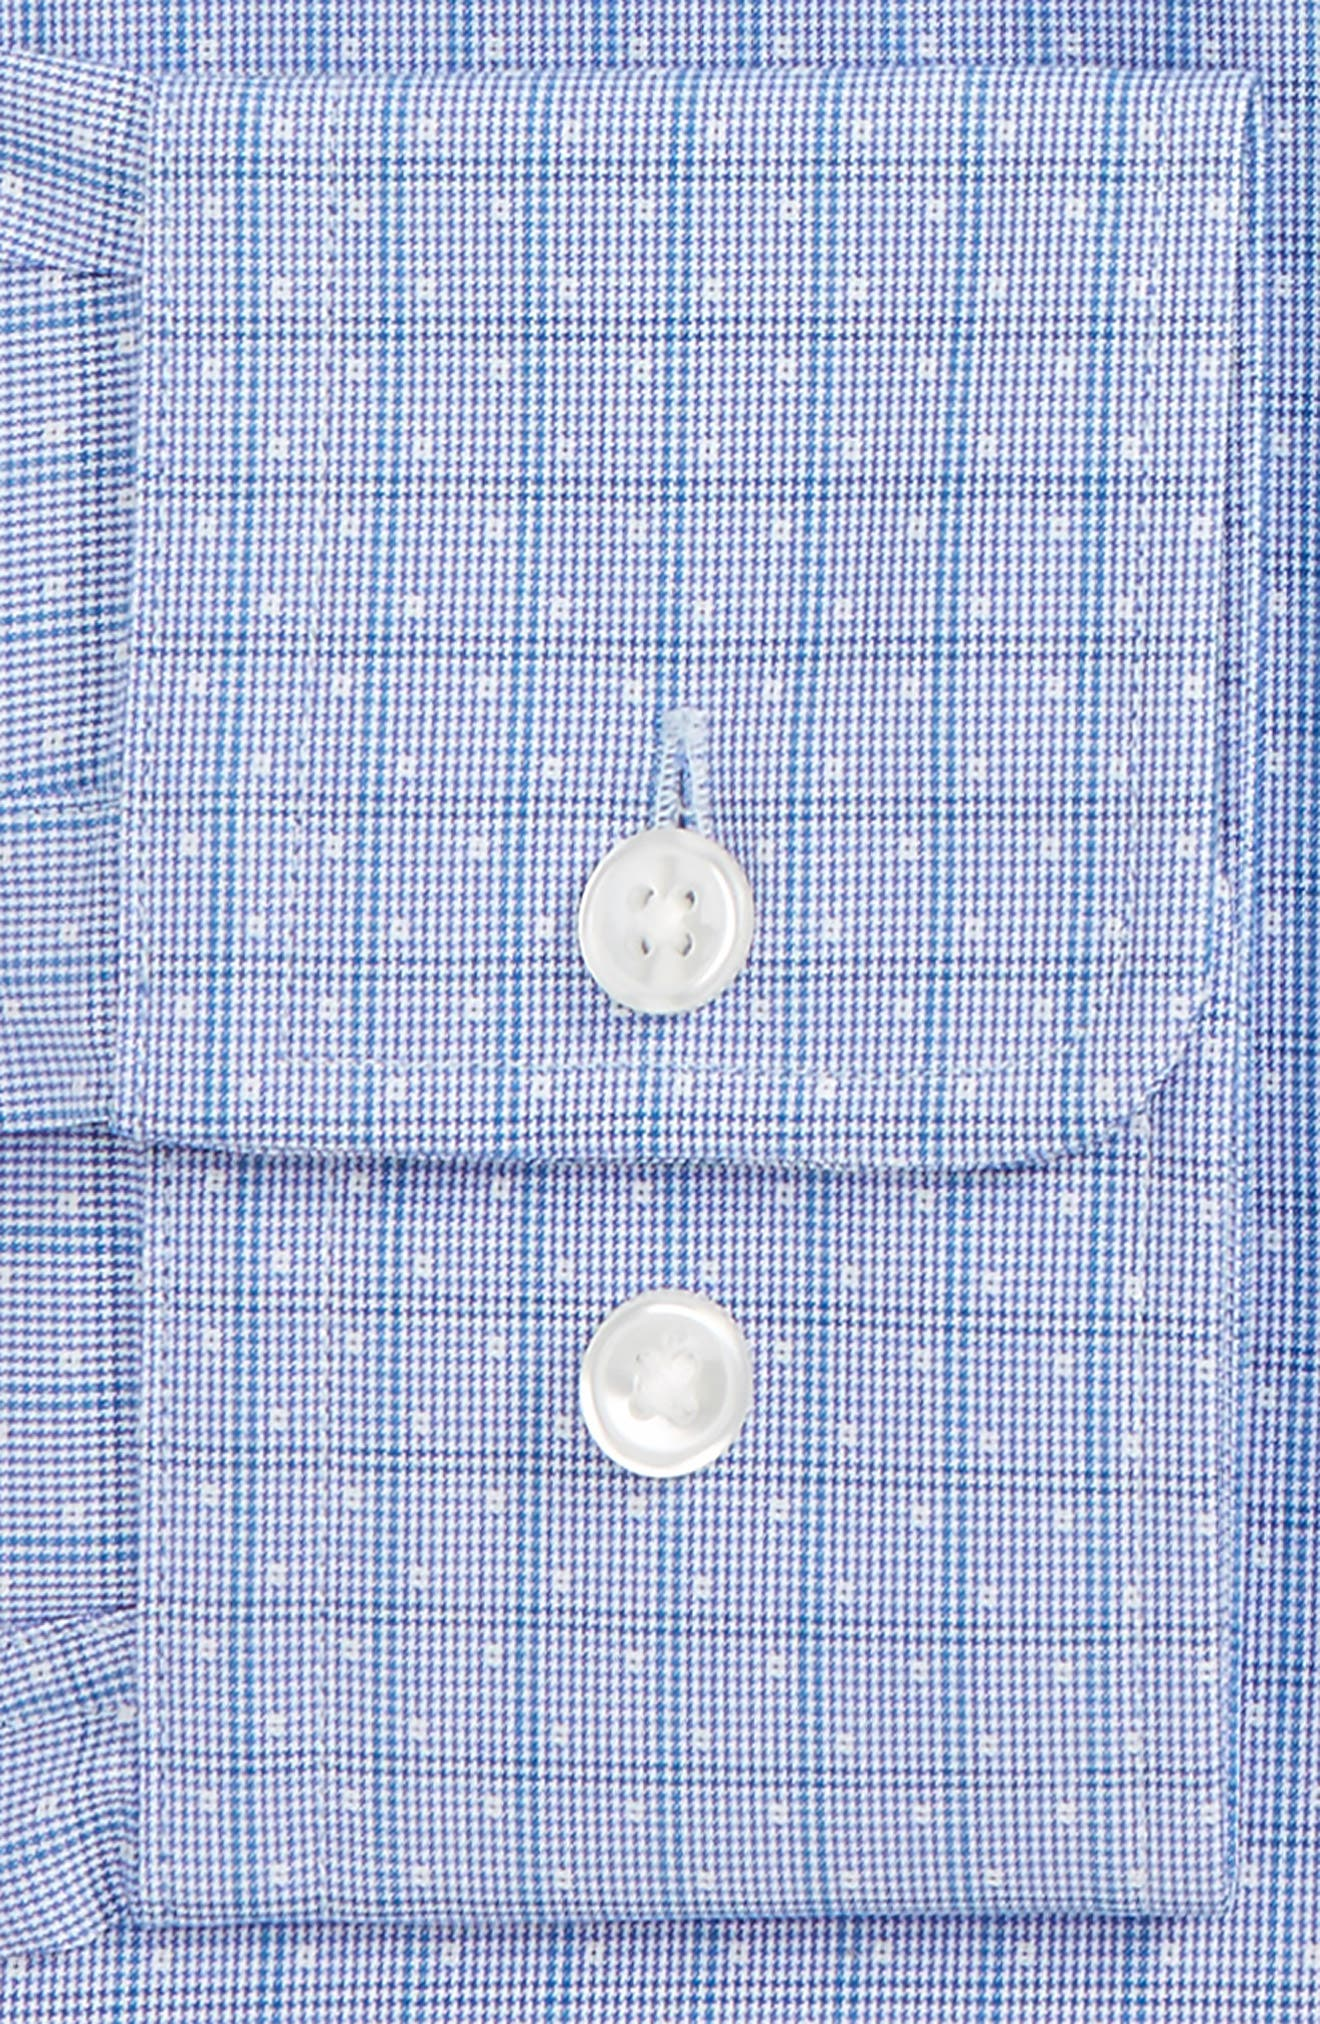 Marley Sharp Fit Check Dress Shirt,                             Alternate thumbnail 2, color,                             420